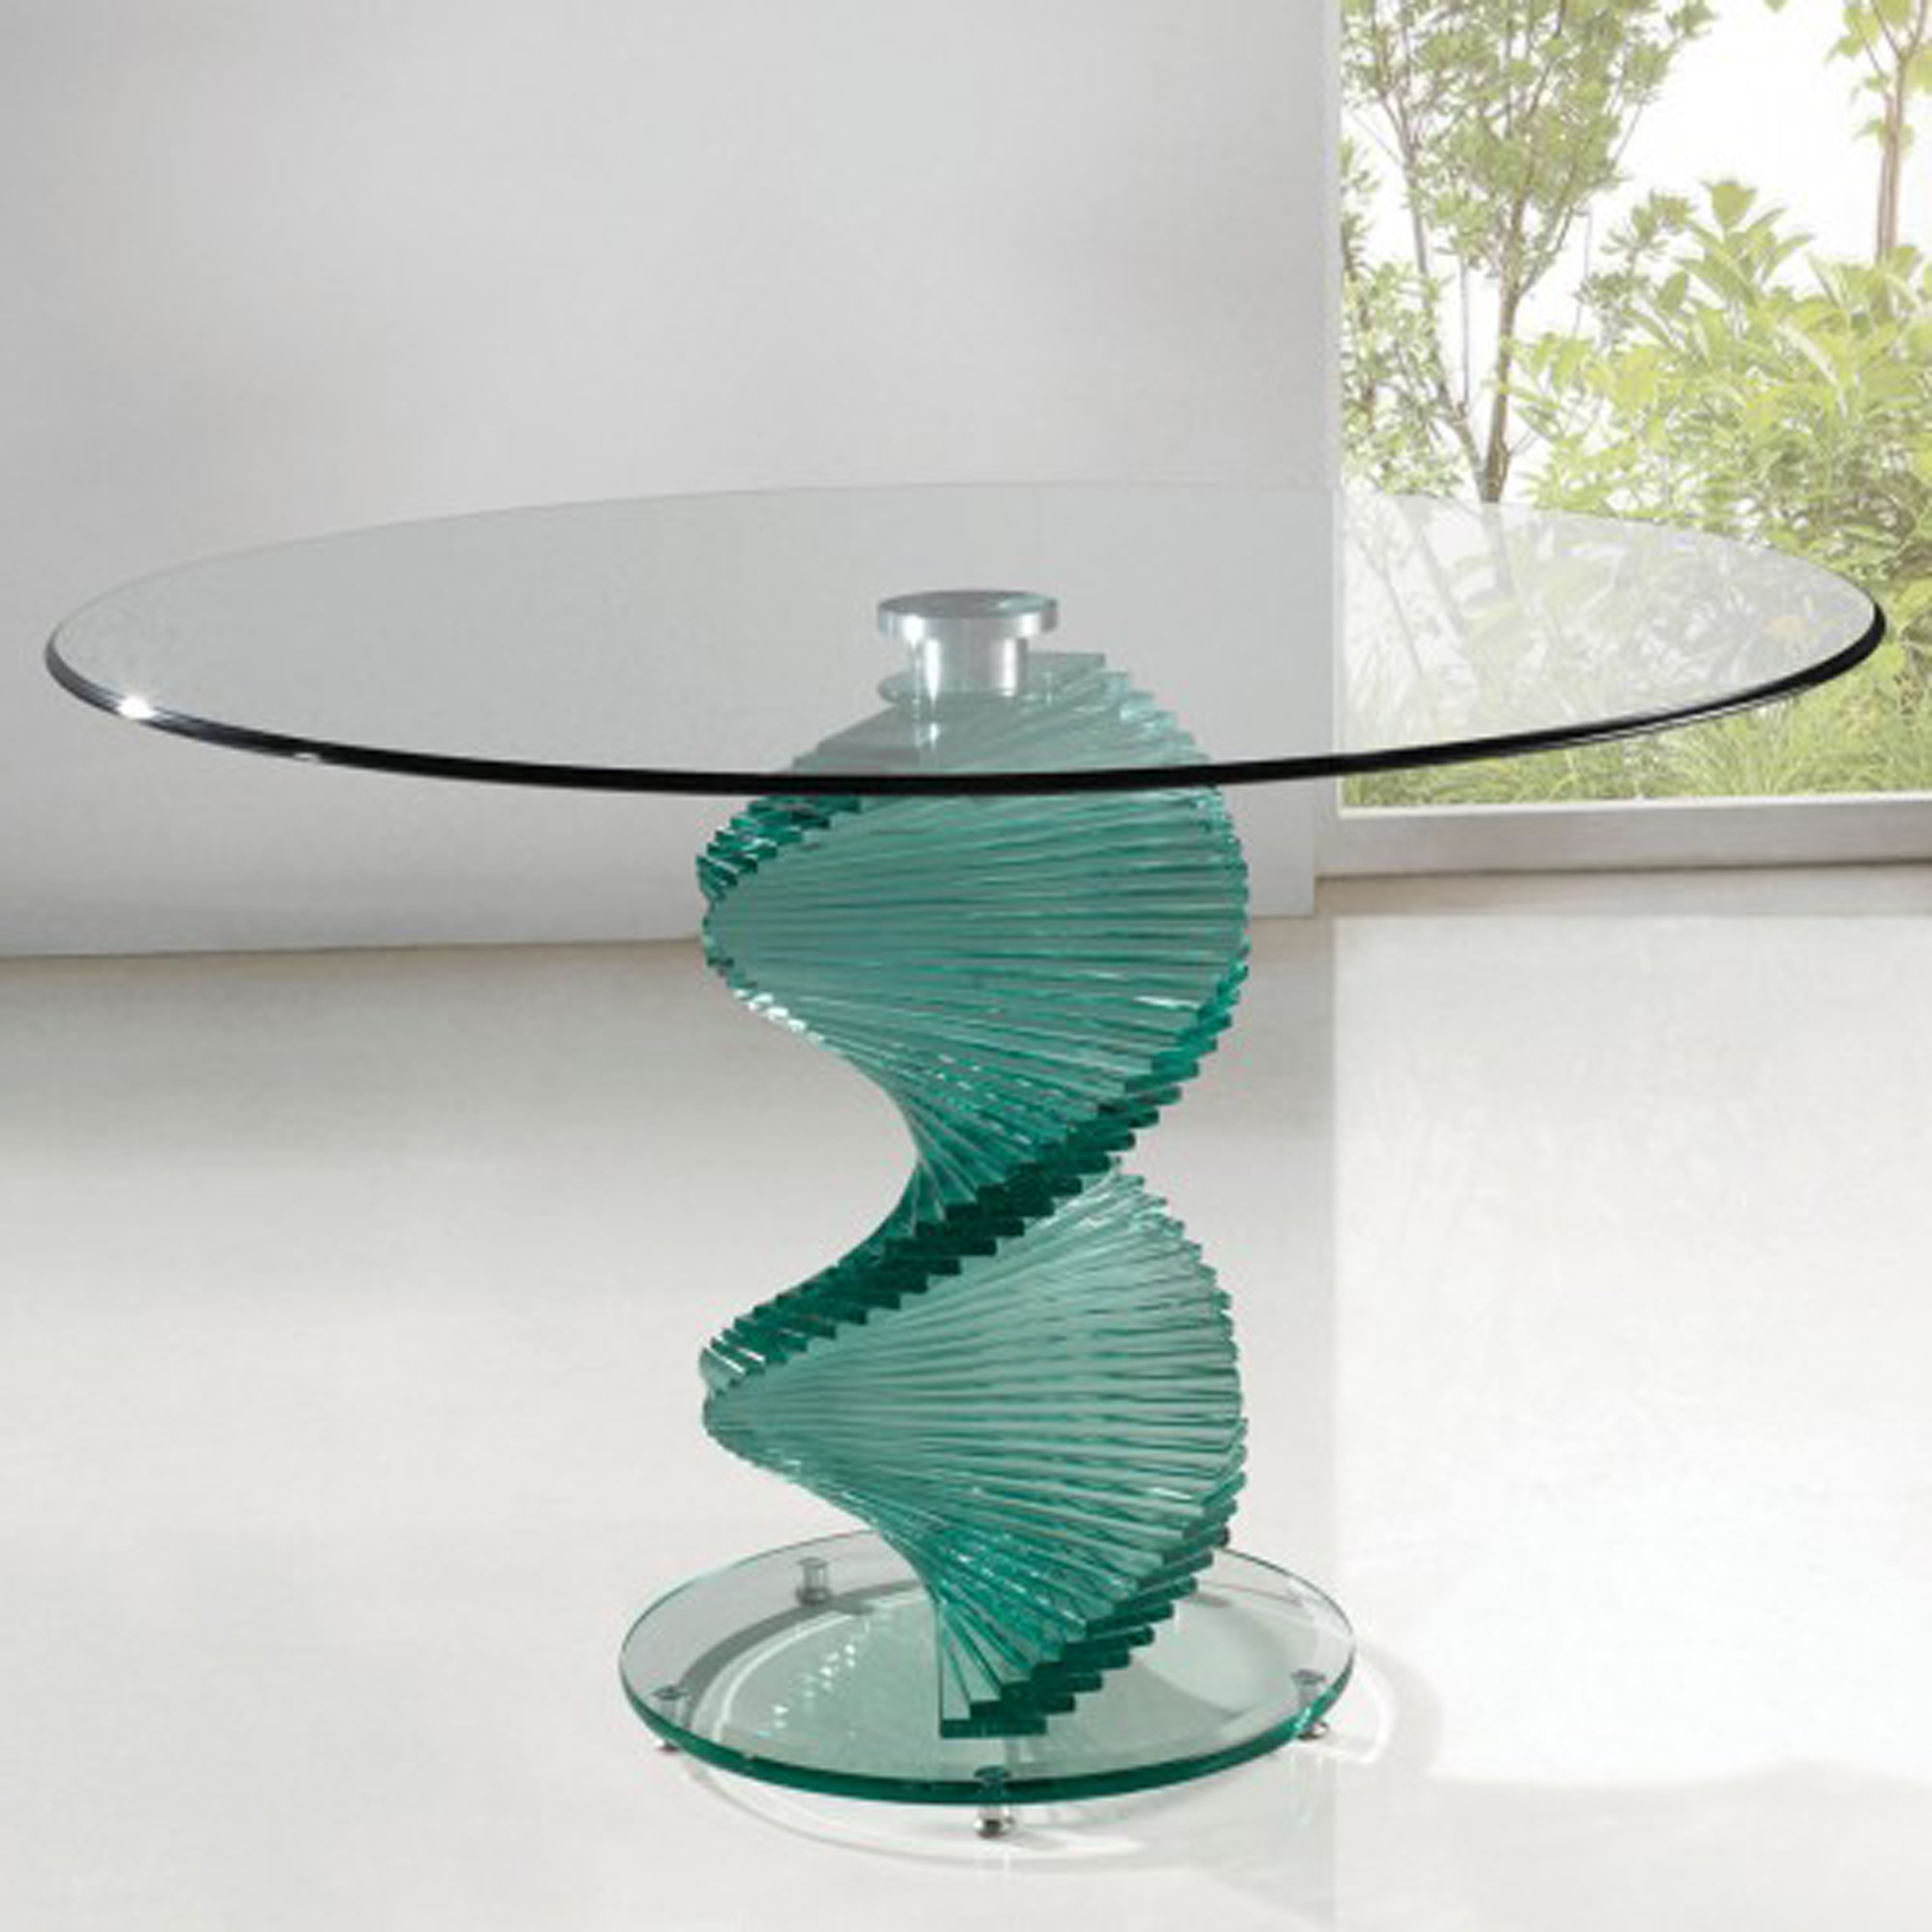 Dining Room Furniture Sets Of Modern Round Top Glass For Dining Table Set With Unique Green Glass Spiral Table Leg Ideas (Image 8 of 28)